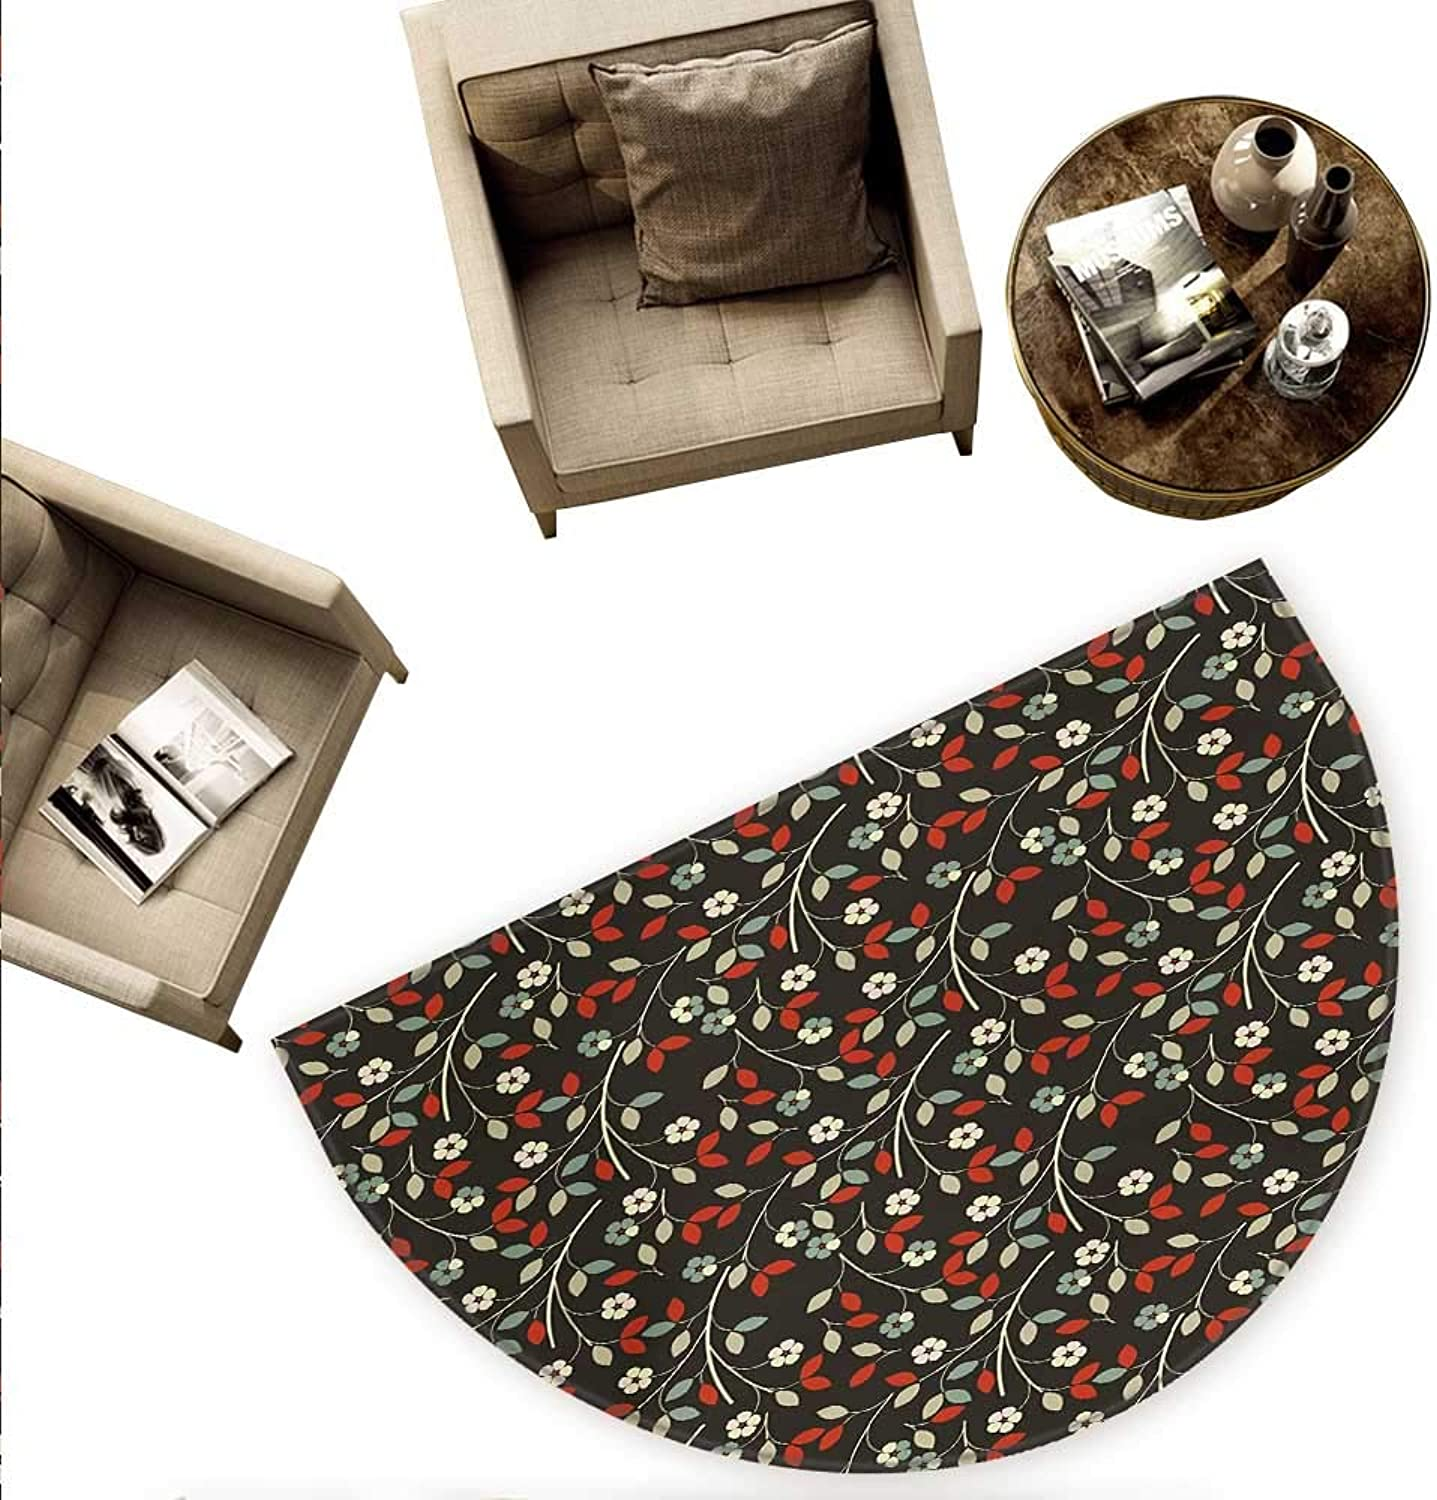 Floral Semicircular Cushion Nostalgic Romantic Garden Pattern with Little Flowers and Leaves Traditional Look Entry Door Mat H 70.8  xD 106.3  Multicolor